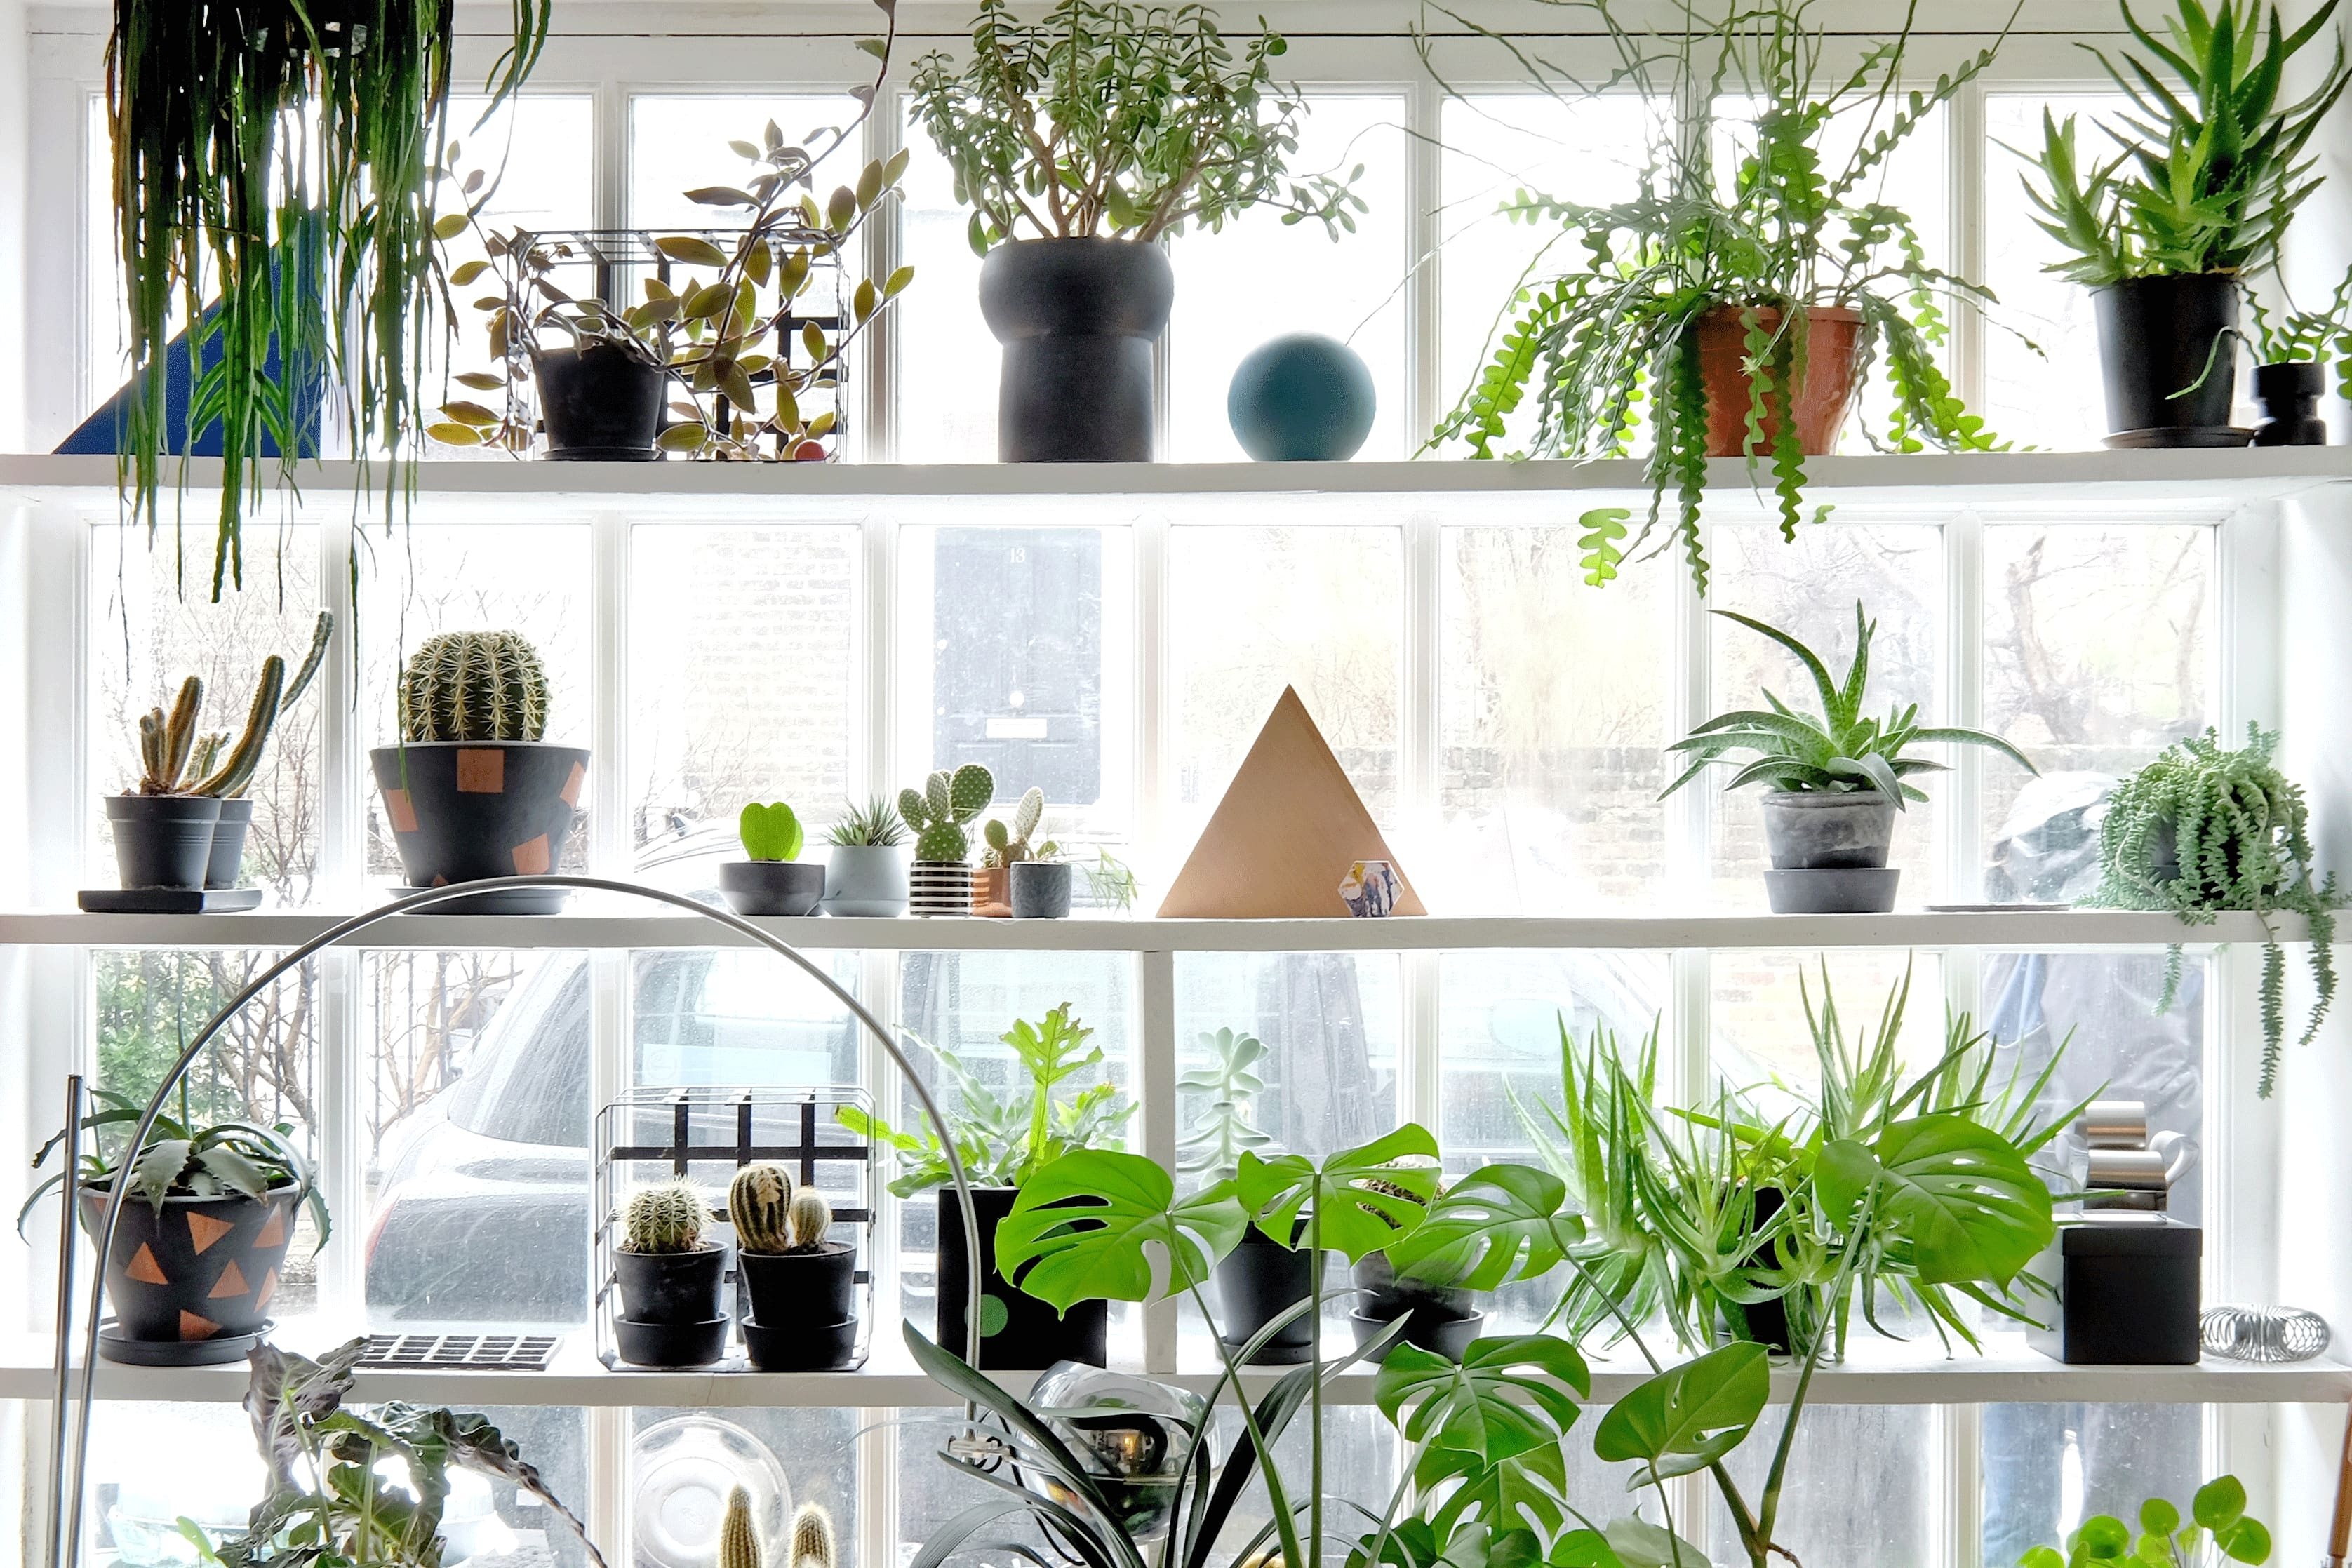 6 Unique Houseplants to Grow at Home